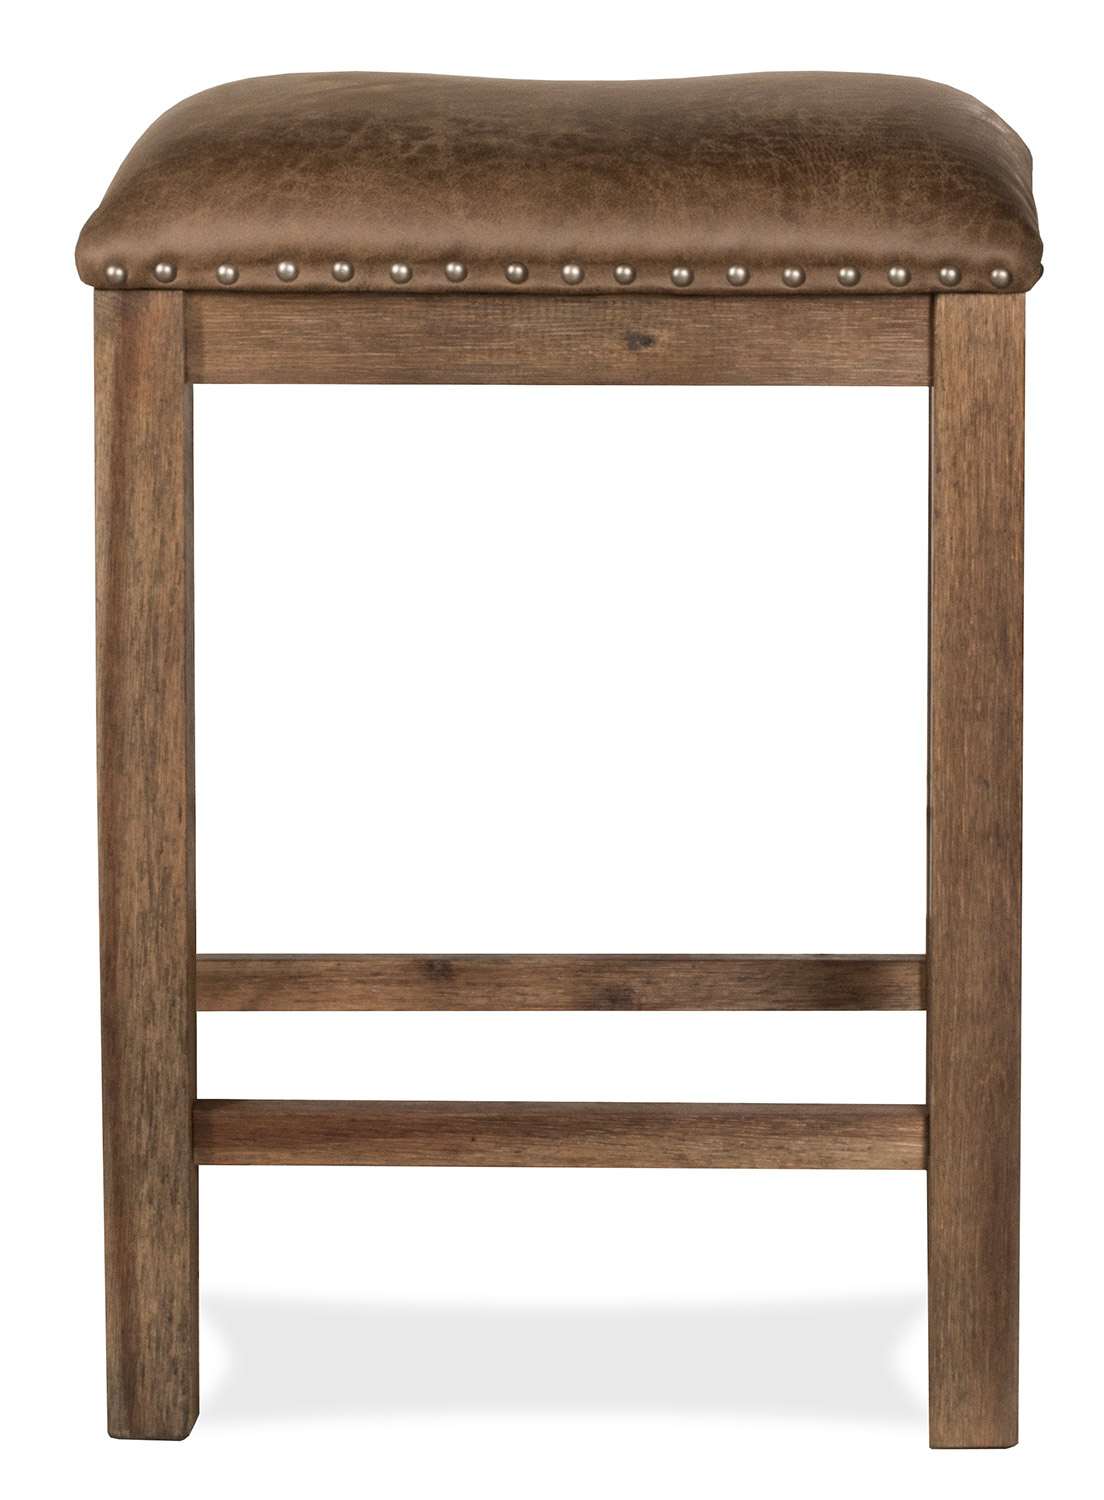 Hillsdale Willow Bend Stationary Counter Height Stool - Antique Brown Walnut